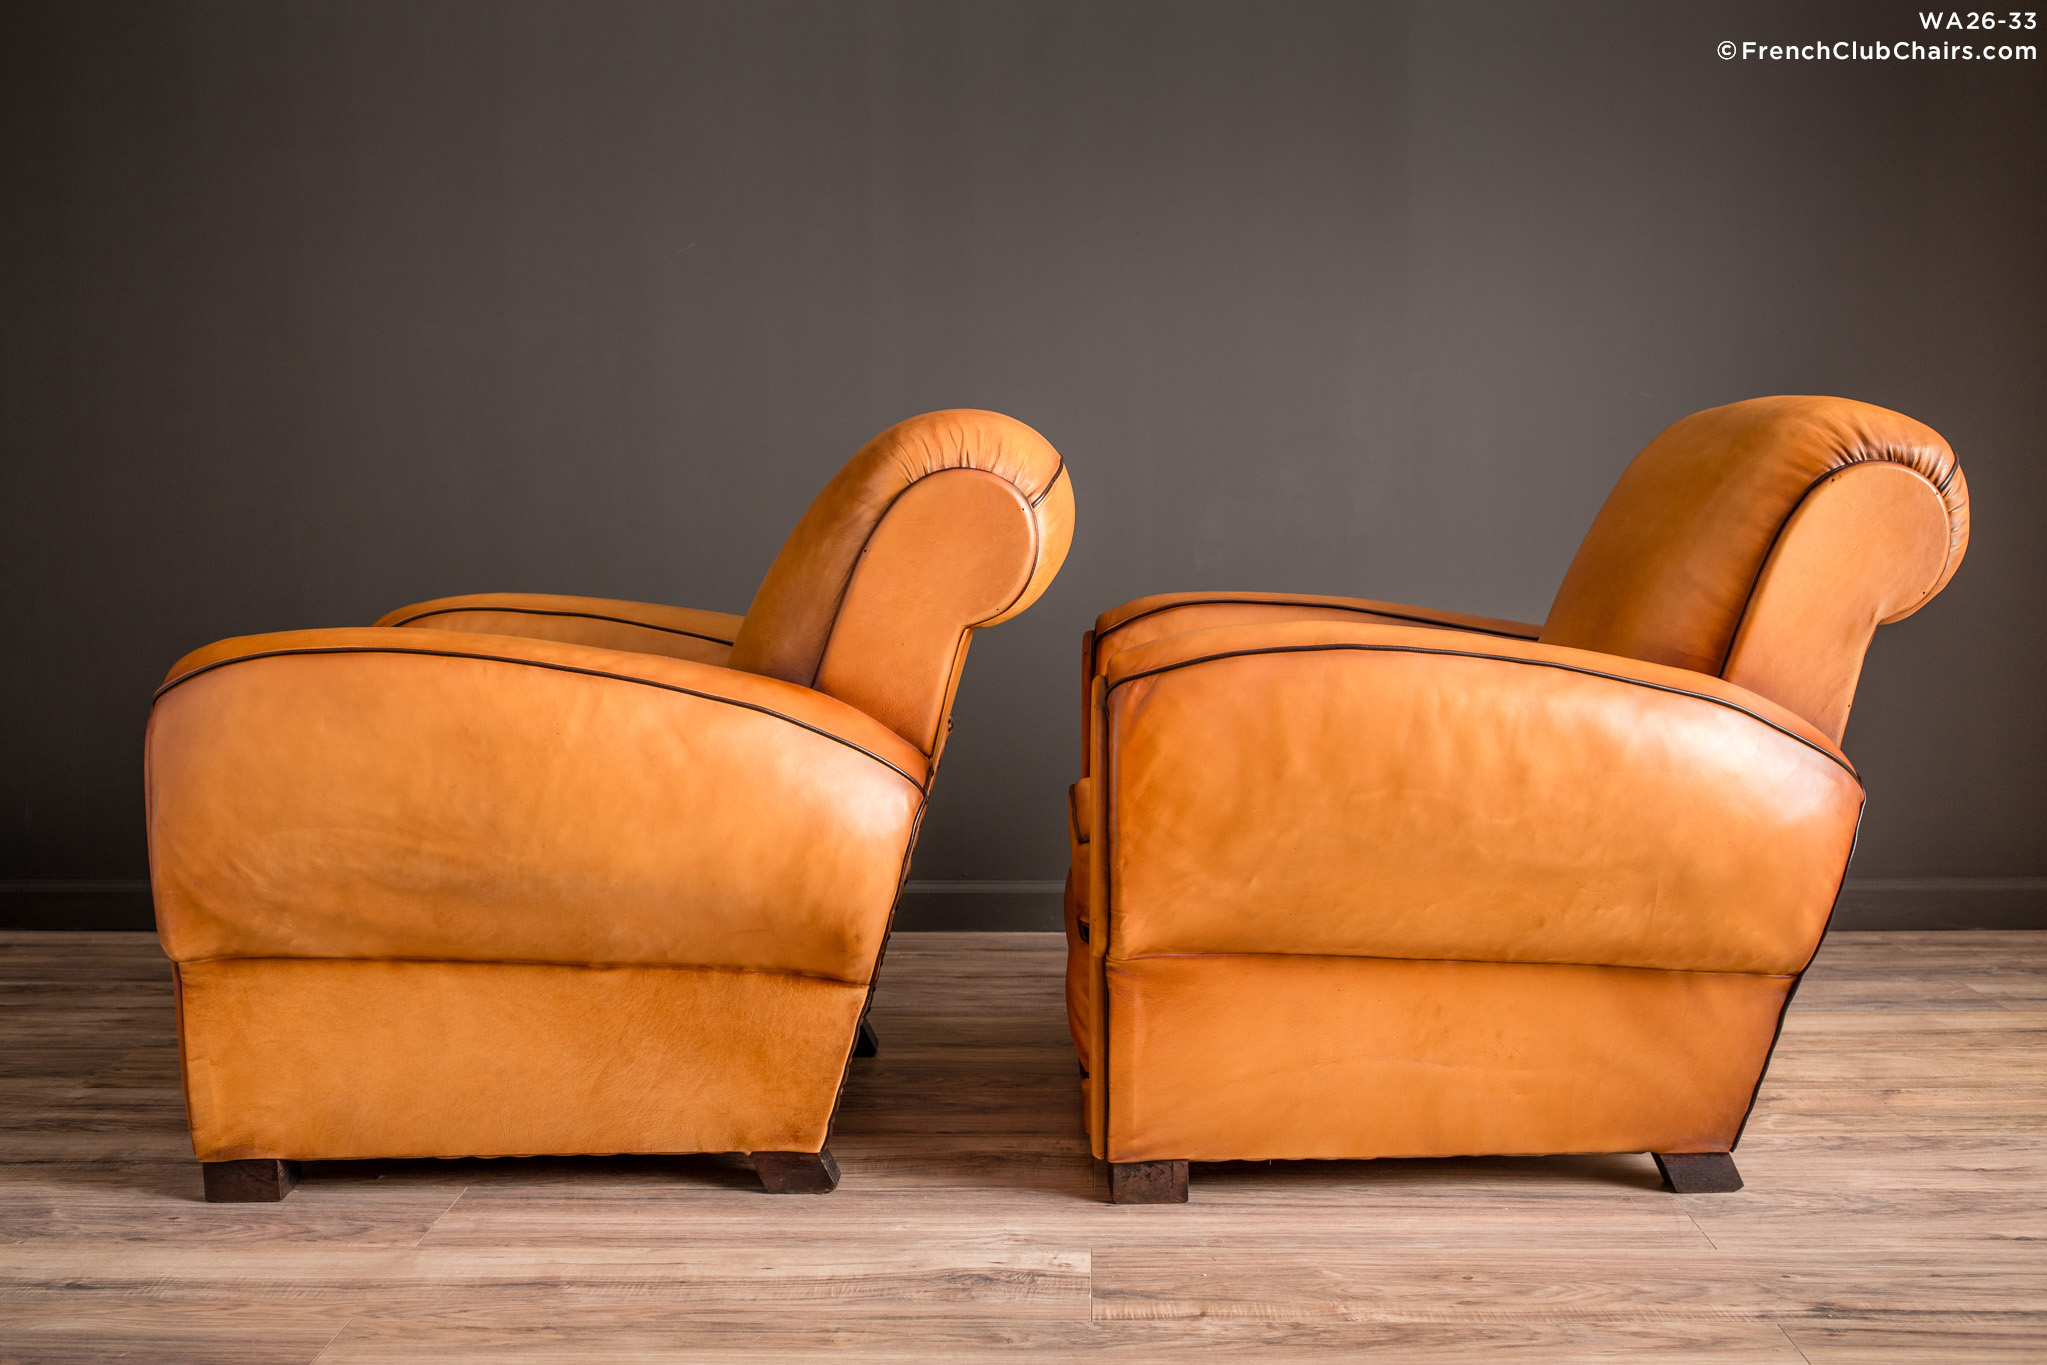 WA_26-33_Rambouillet_Rollback_Pair_R_4LT-v01-williams-antiks-leather-french-club-chair-wa_fcccom